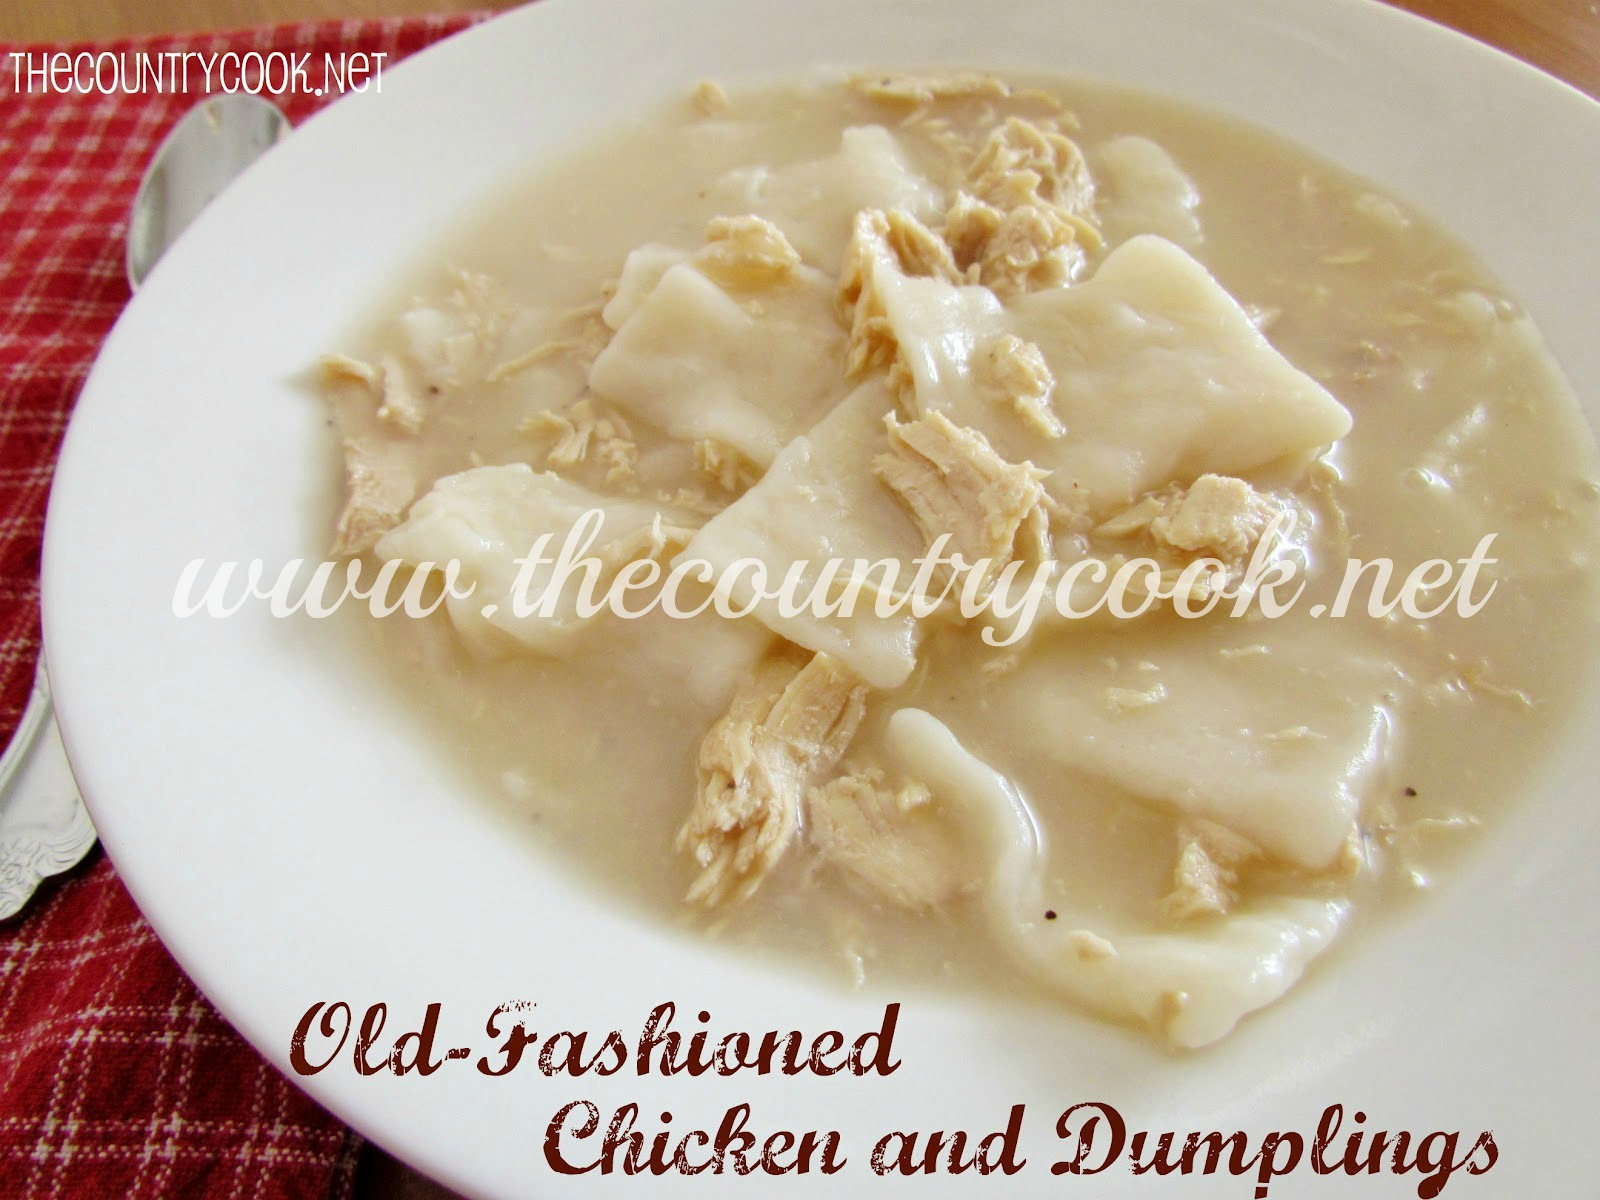 Old-Fashioned Chicken and Dumplings - The Country Cook